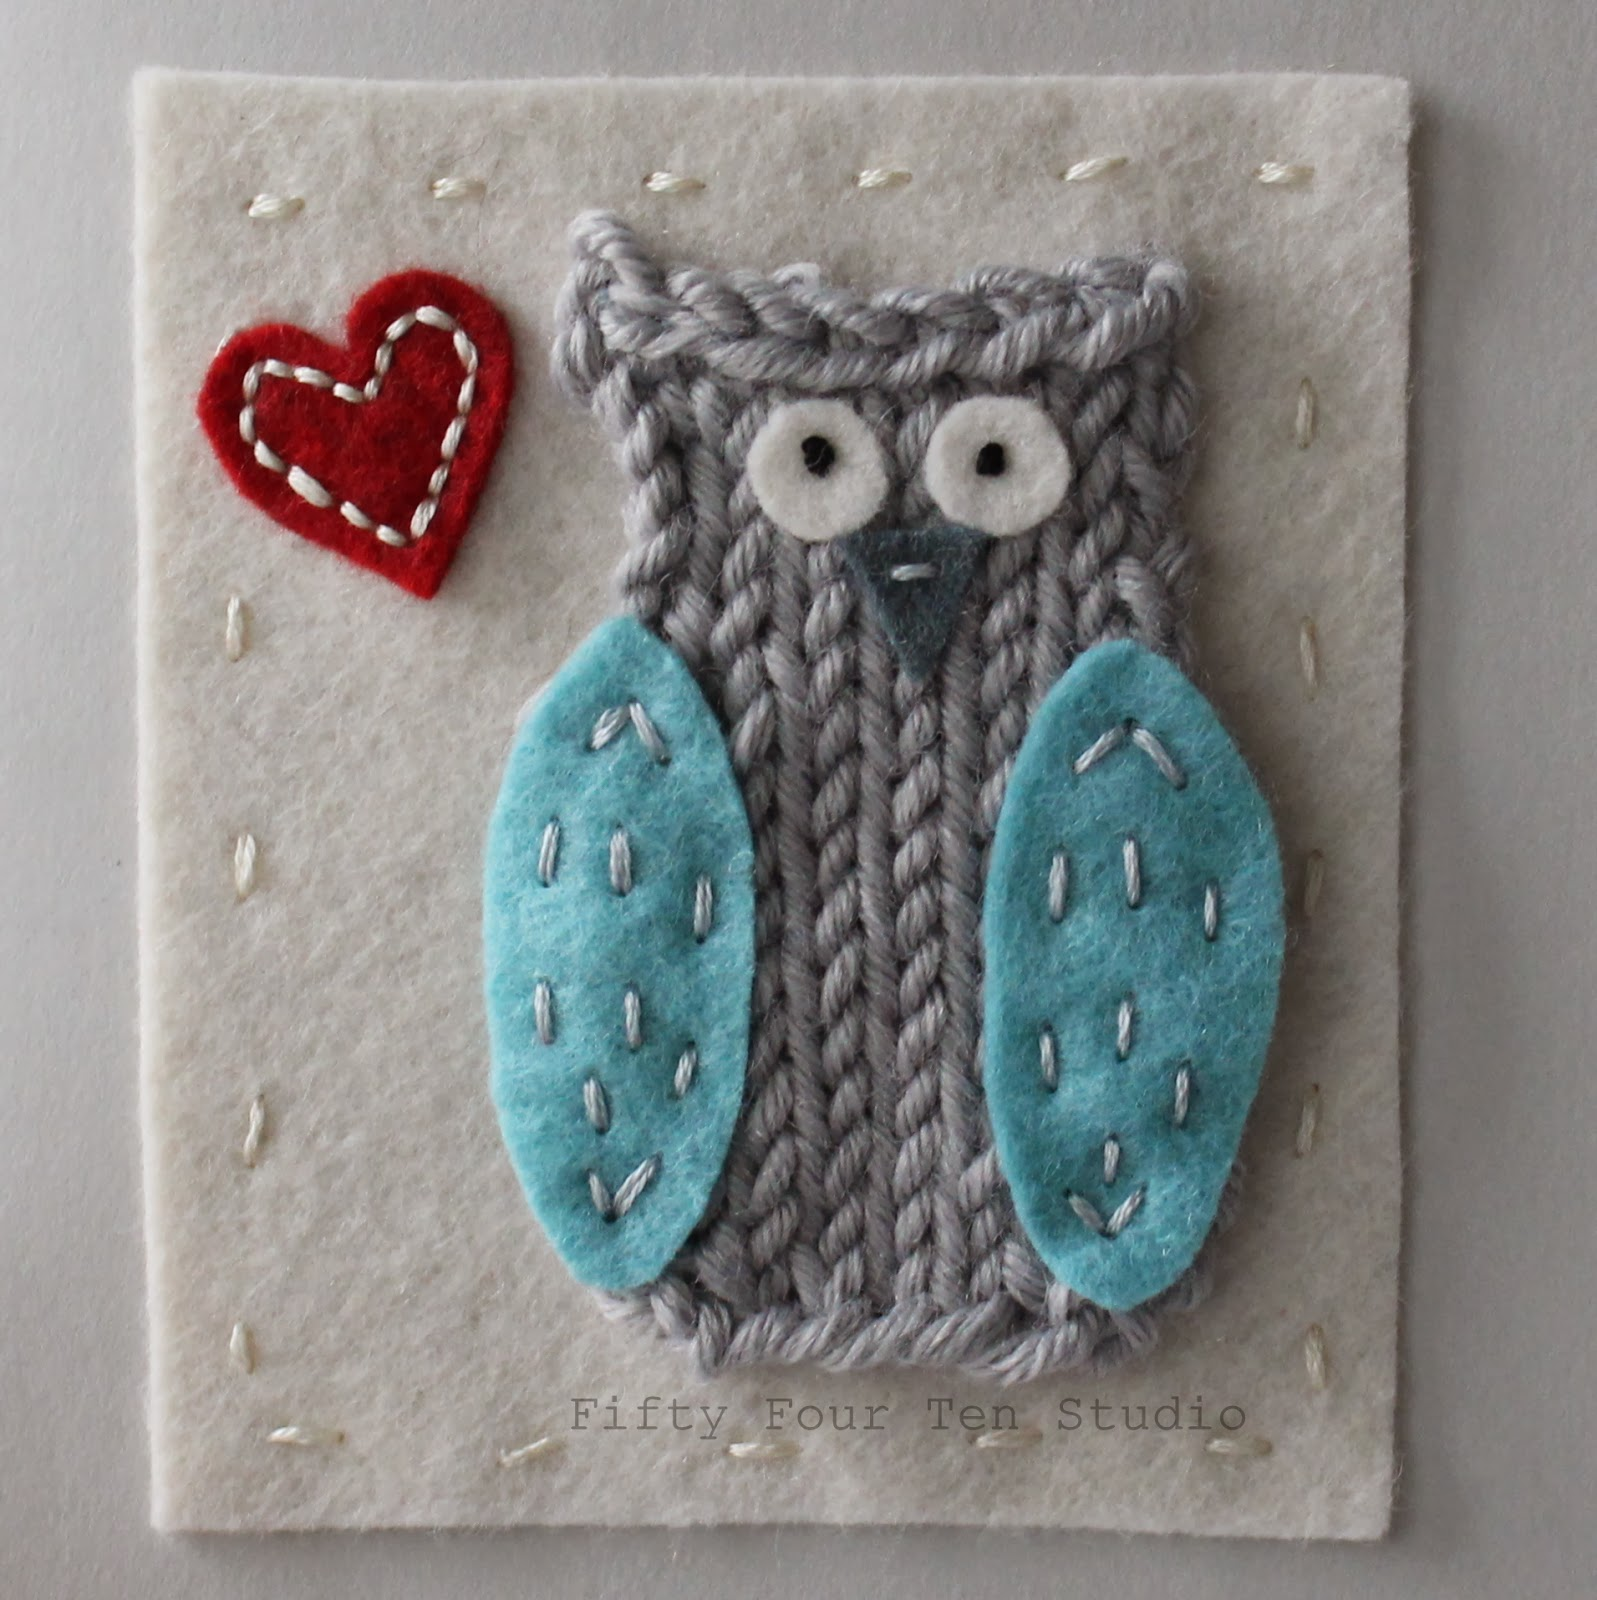 Fifty Four Ten Studio: Free Little Owl Knitting Pattern!